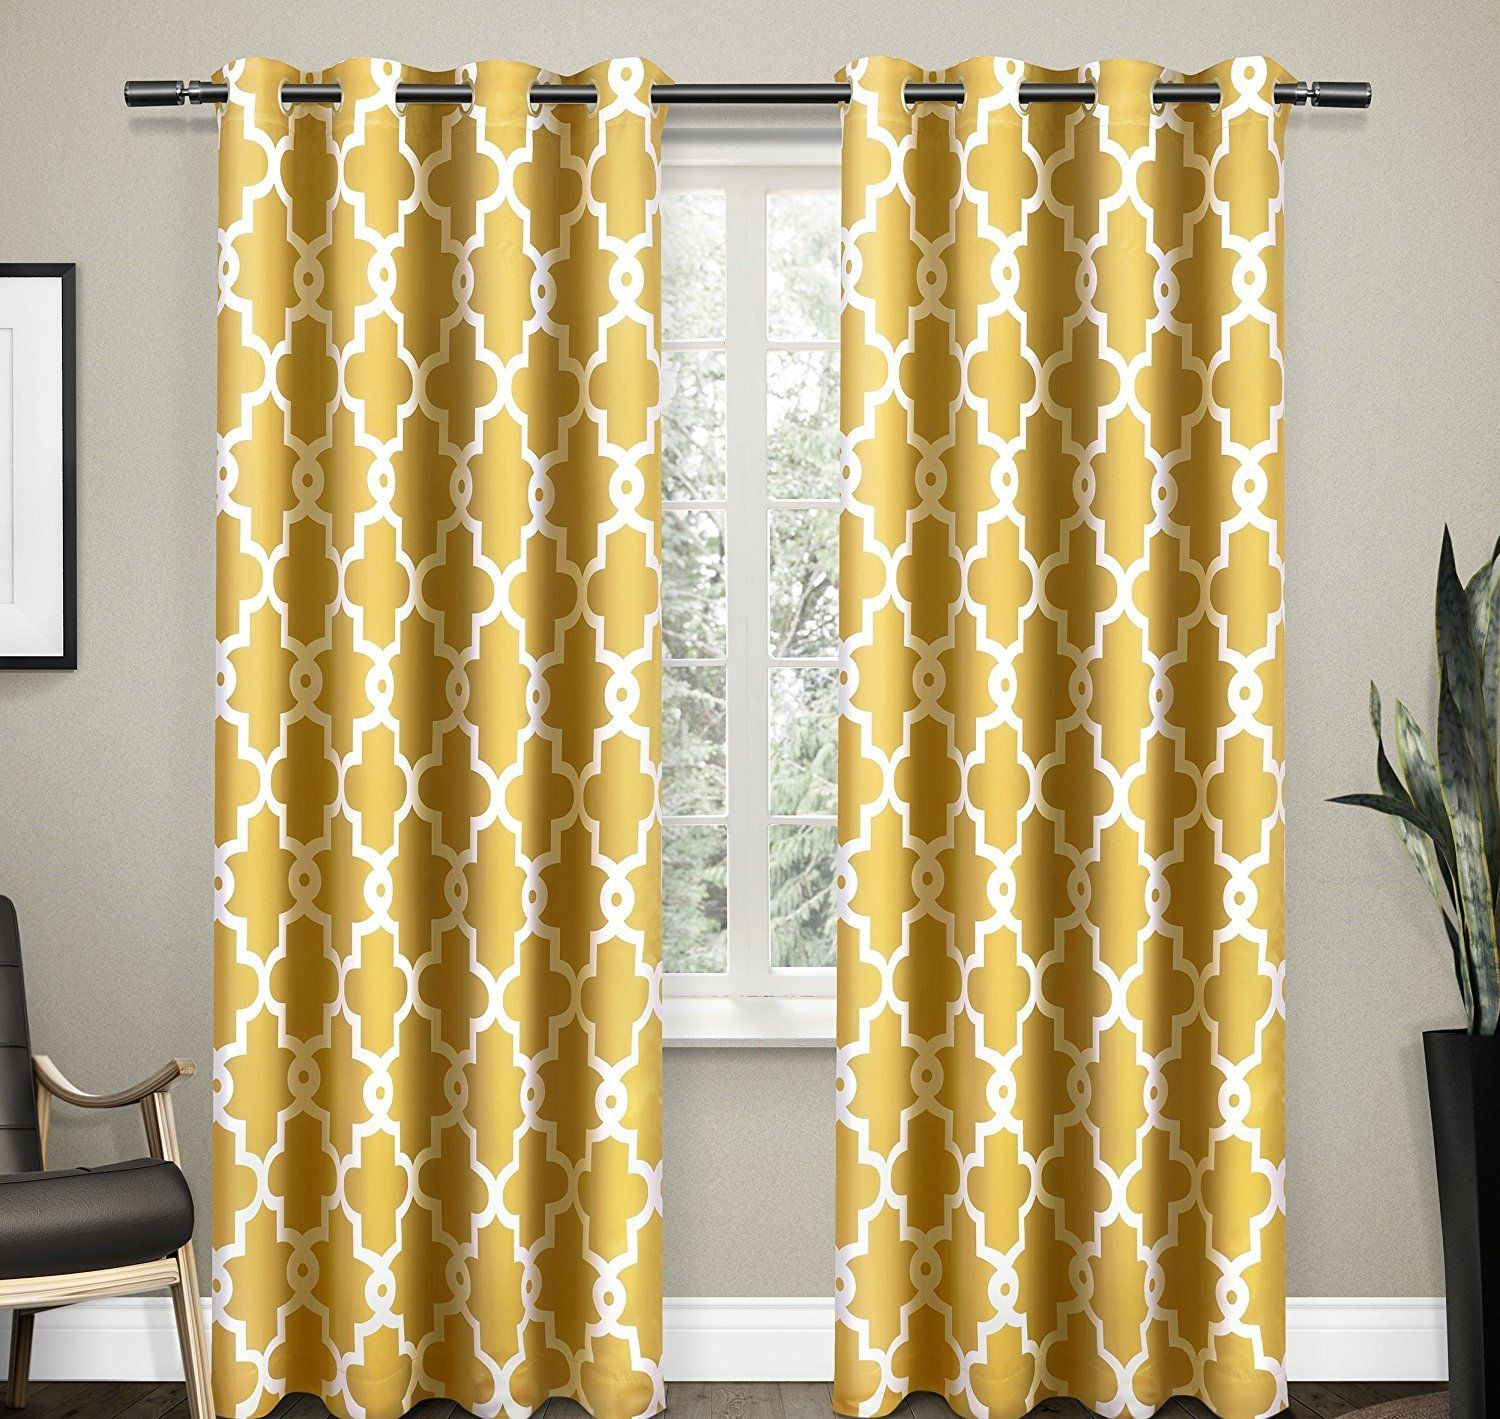 stunning red trellis treatments window curtains curtain pattern